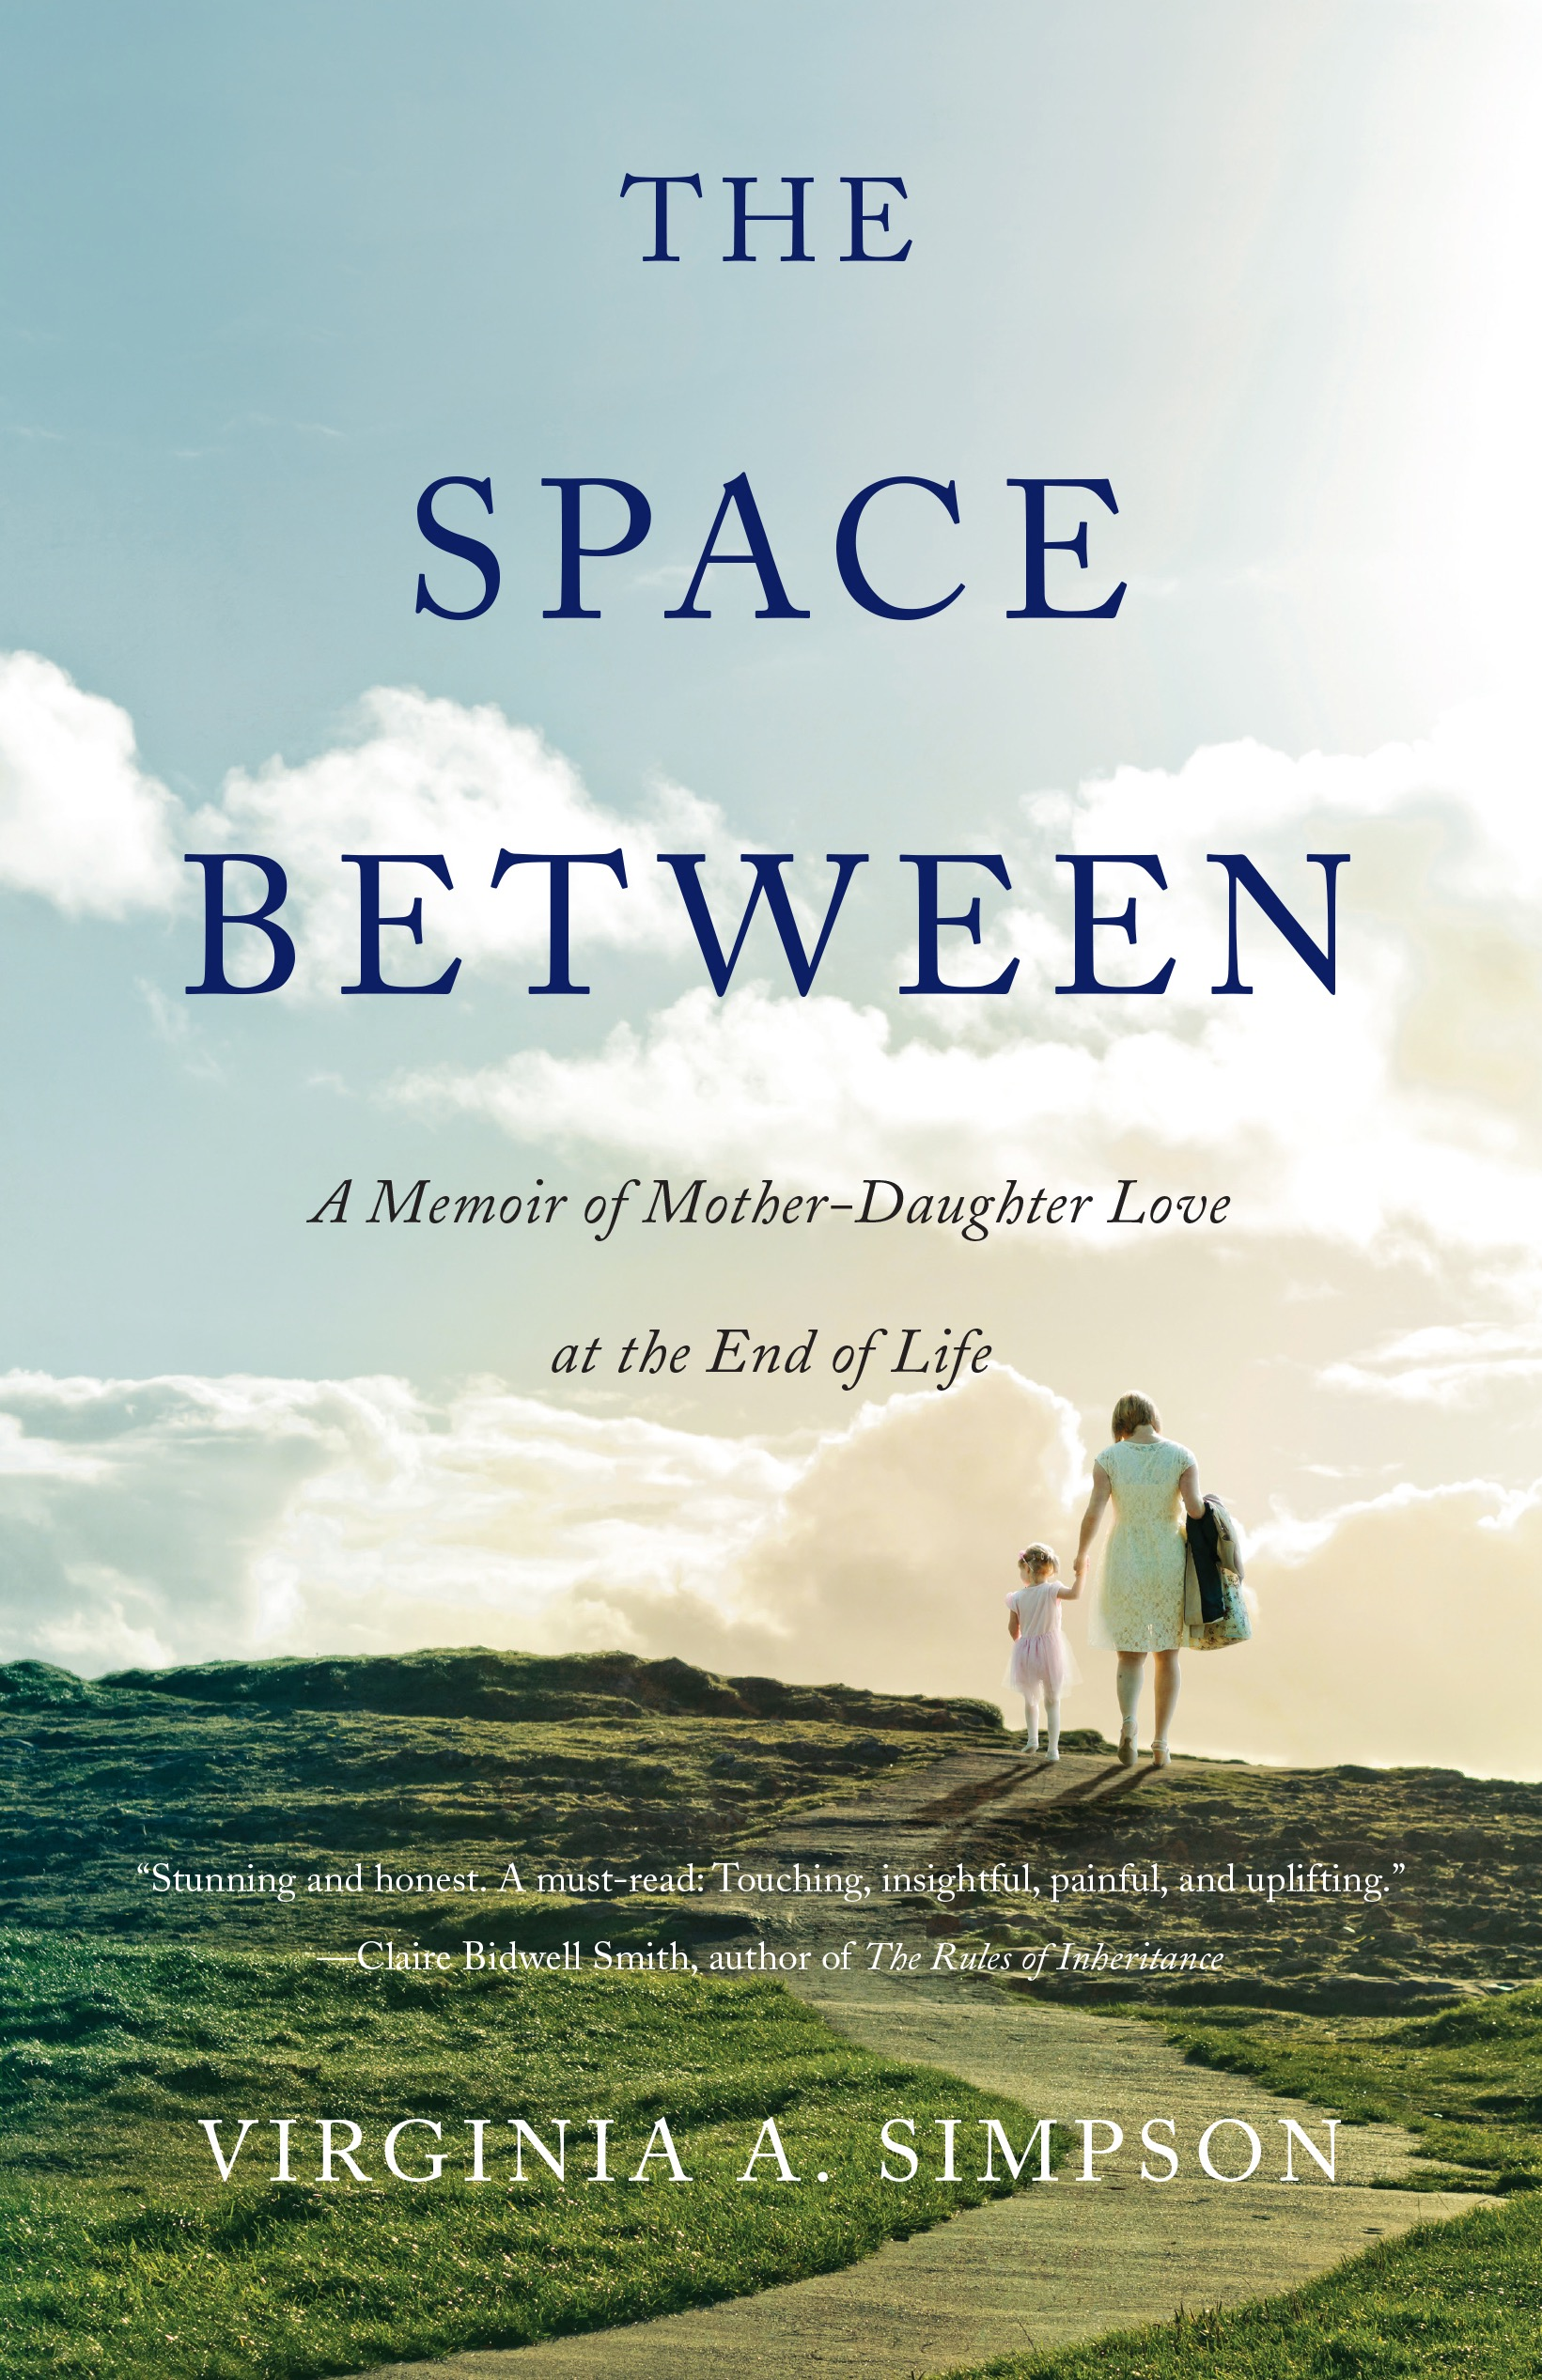 Author dr virginia a simpsons memoir the space between a memoir an adult i kept a journal and would write stories for myself i always wanted to write a book but didnt become serious about it until ten years ago solutioingenieria Images